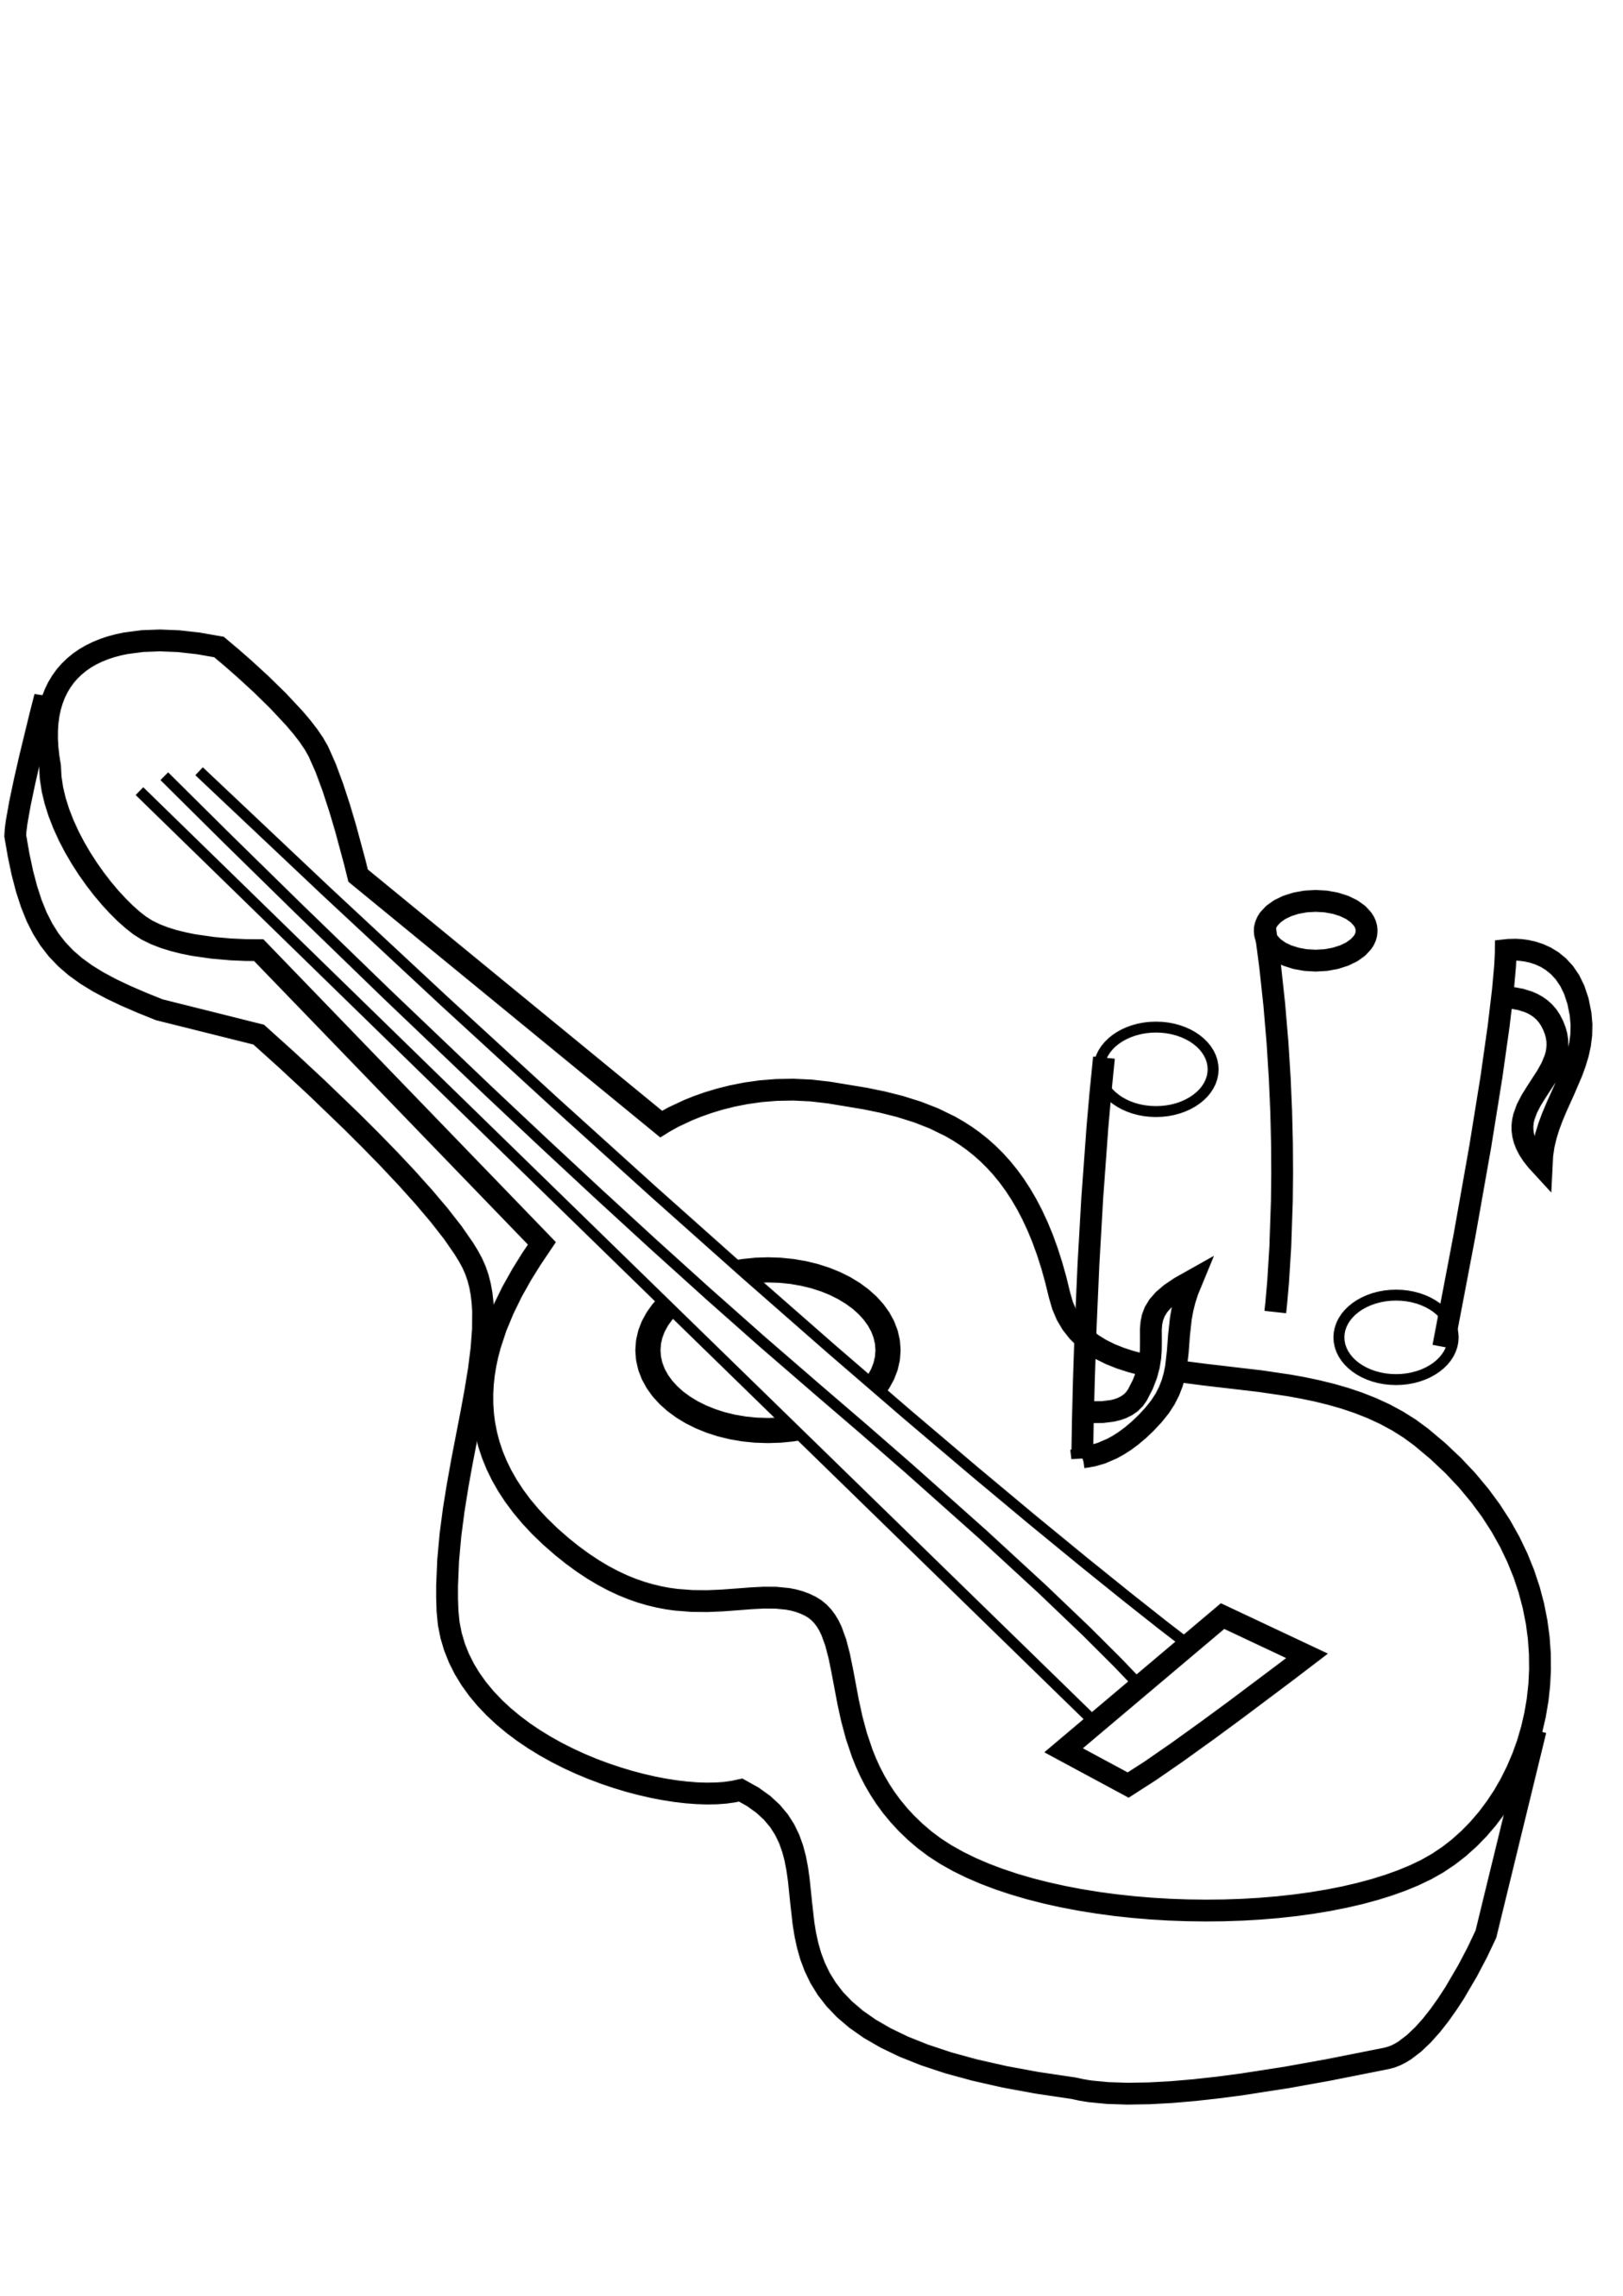 svg transparent download Guitar Clipart